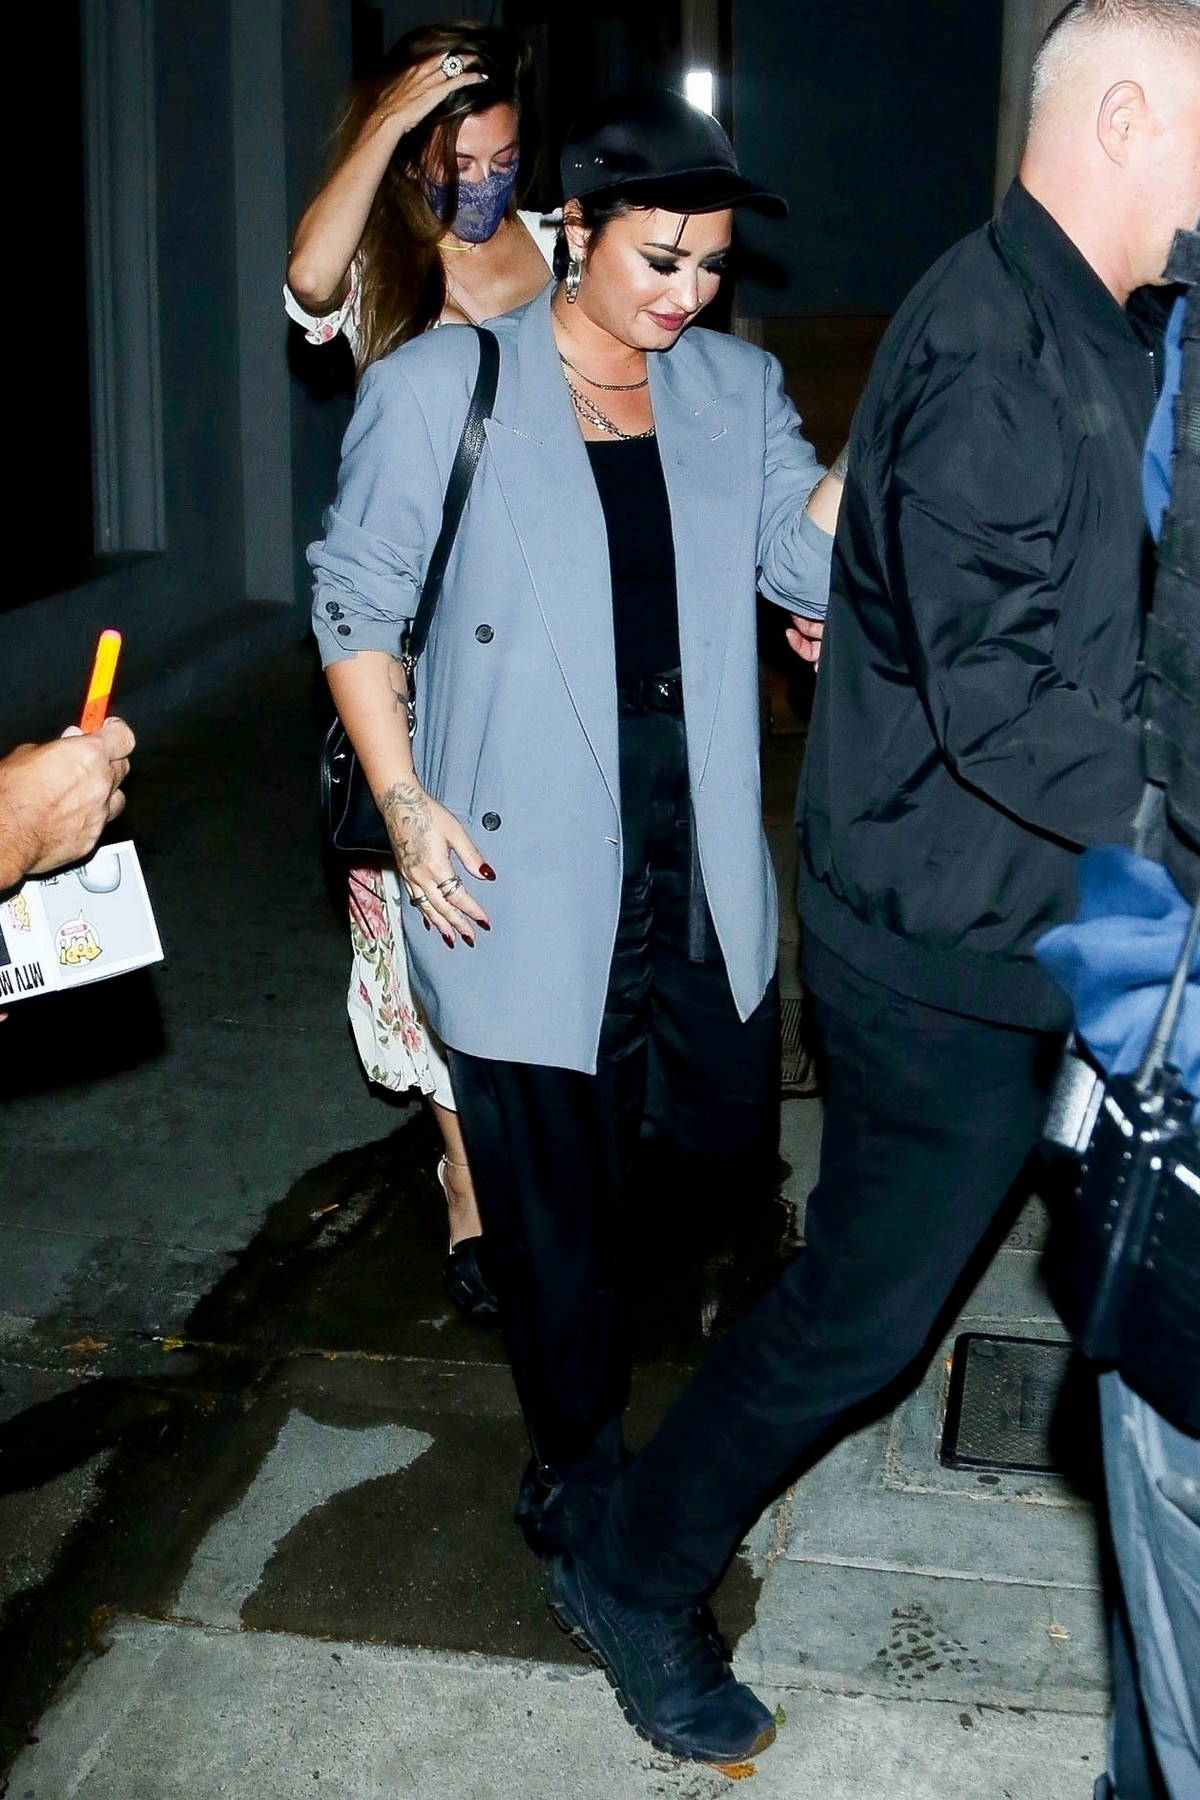 Demi Lovato attempts to escape the paparazzi as they leave dinner at Craig's in West Hollywood, California